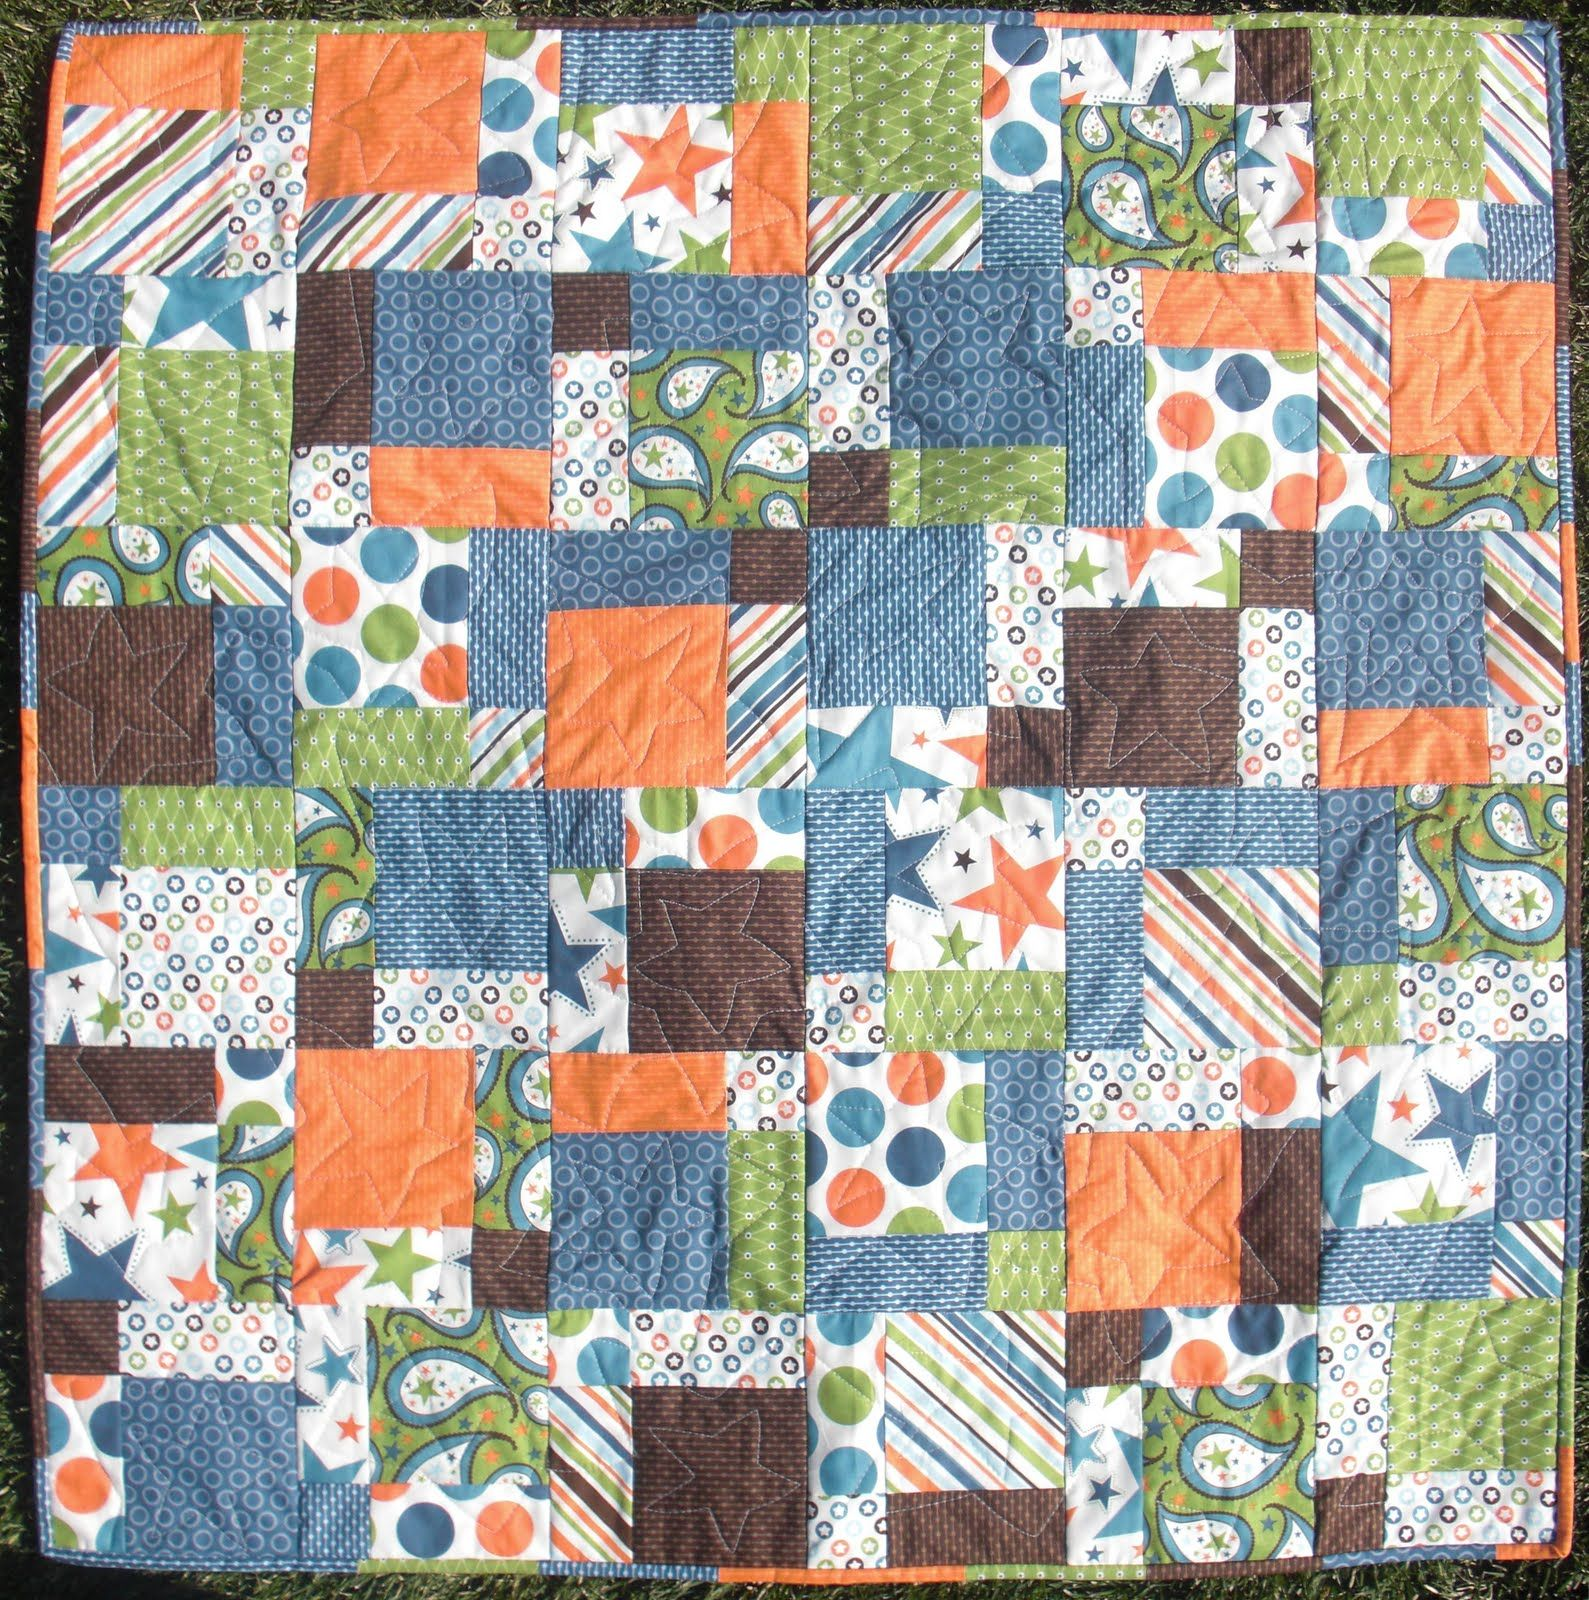 Disappearing nine patch tutorial - also includes fabric yardage ... : guidelines for quilting - Adamdwight.com